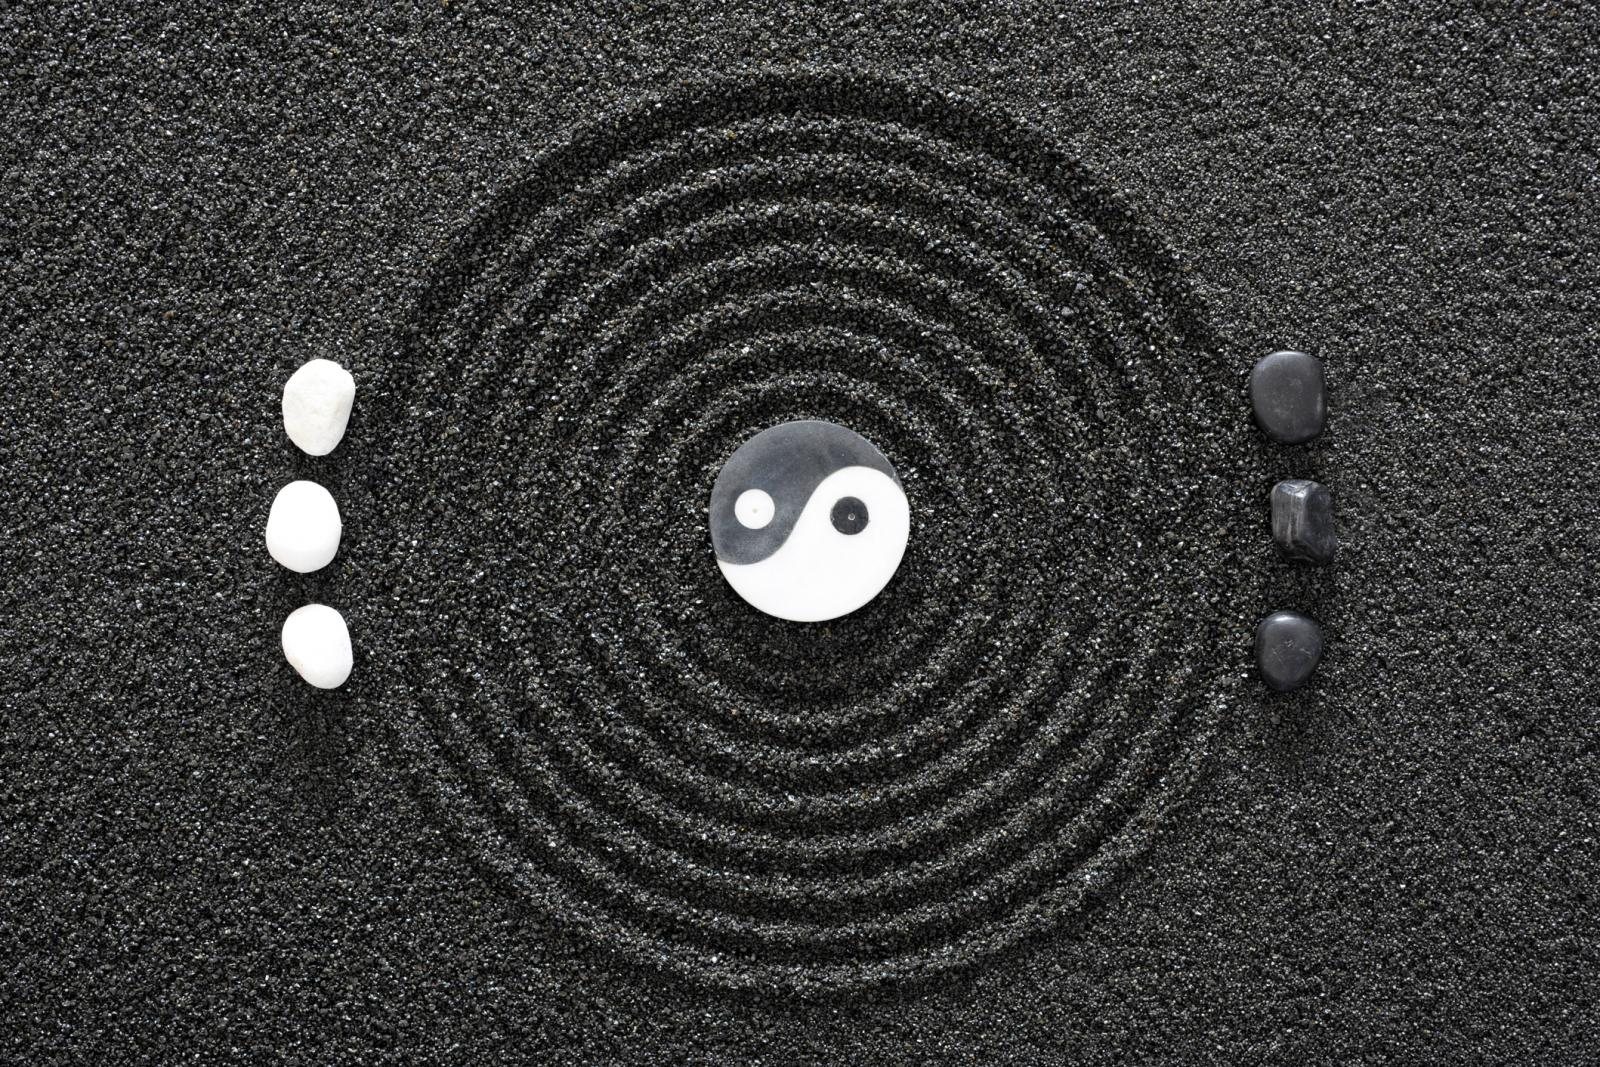 Japanese ZEN garden in black sand with Yin and Yang